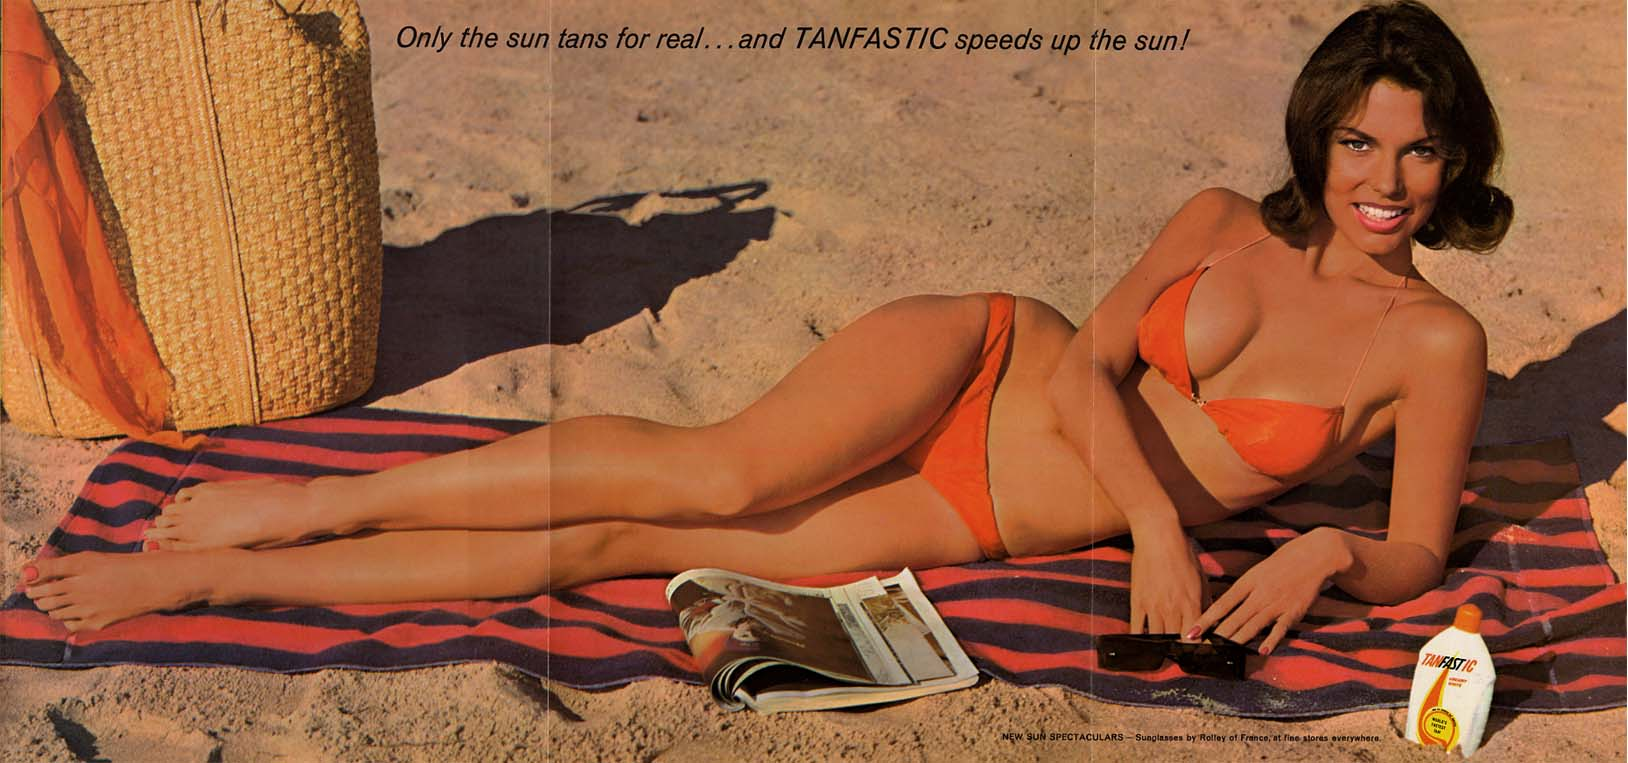 Only sun tans for real & Tanfastic speeds up the sun! ad 1961 Pby